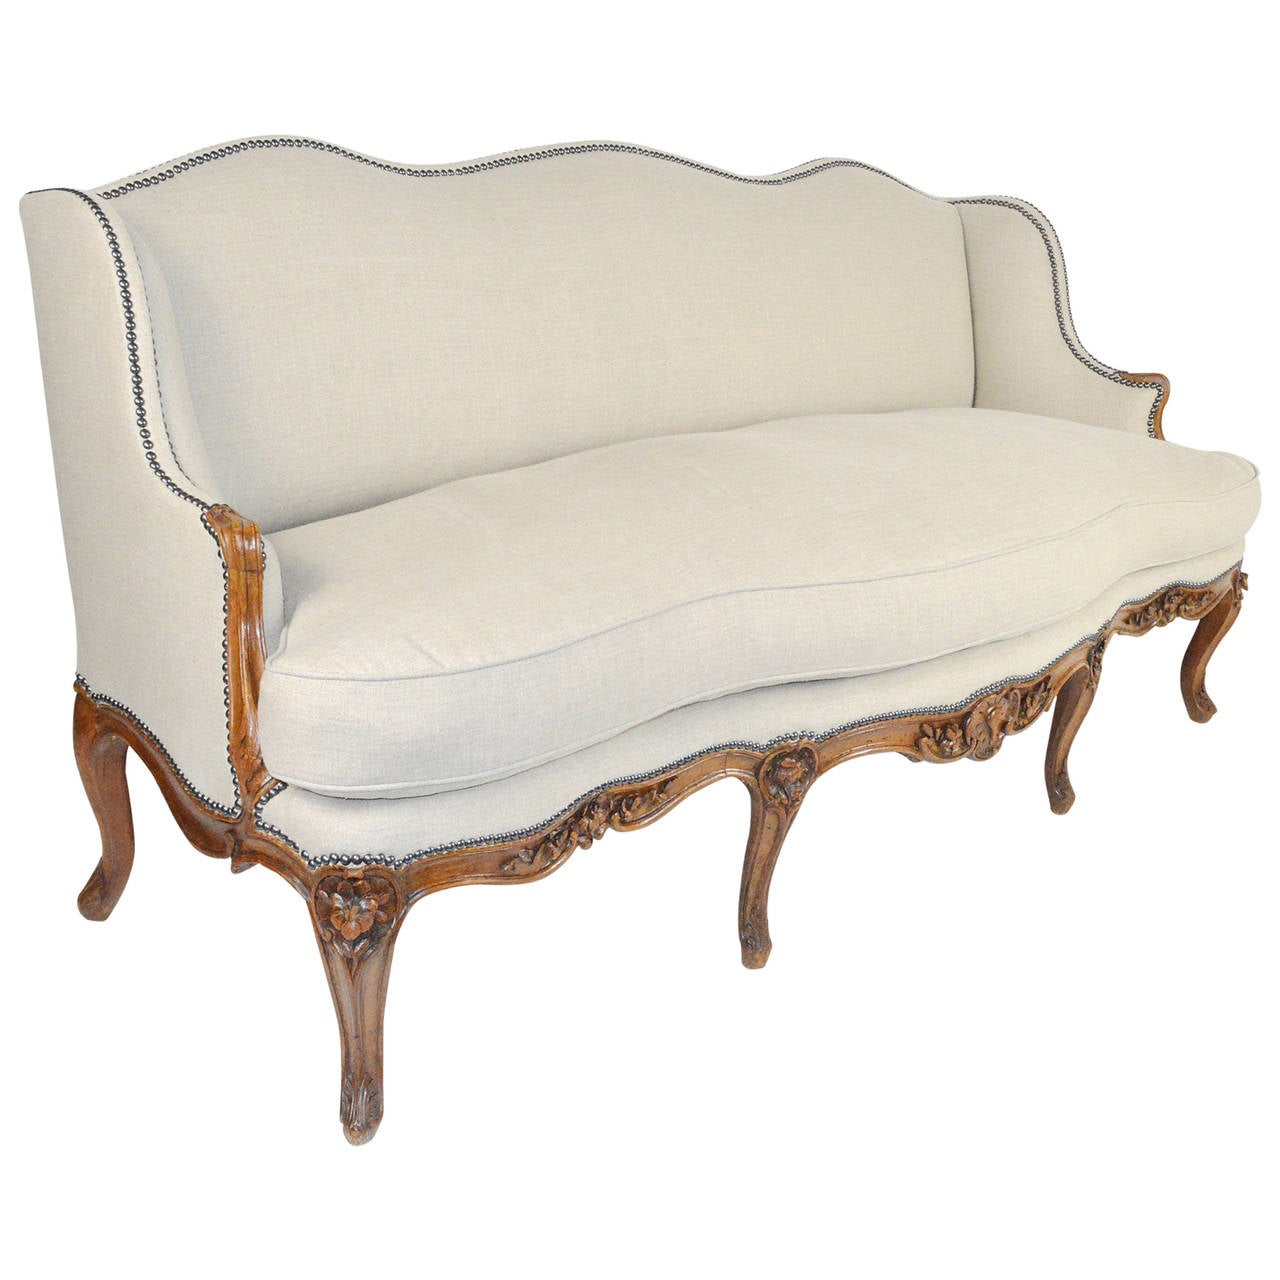 French louis xv style serpentine sofa canape at 1stdibs for French divan chair